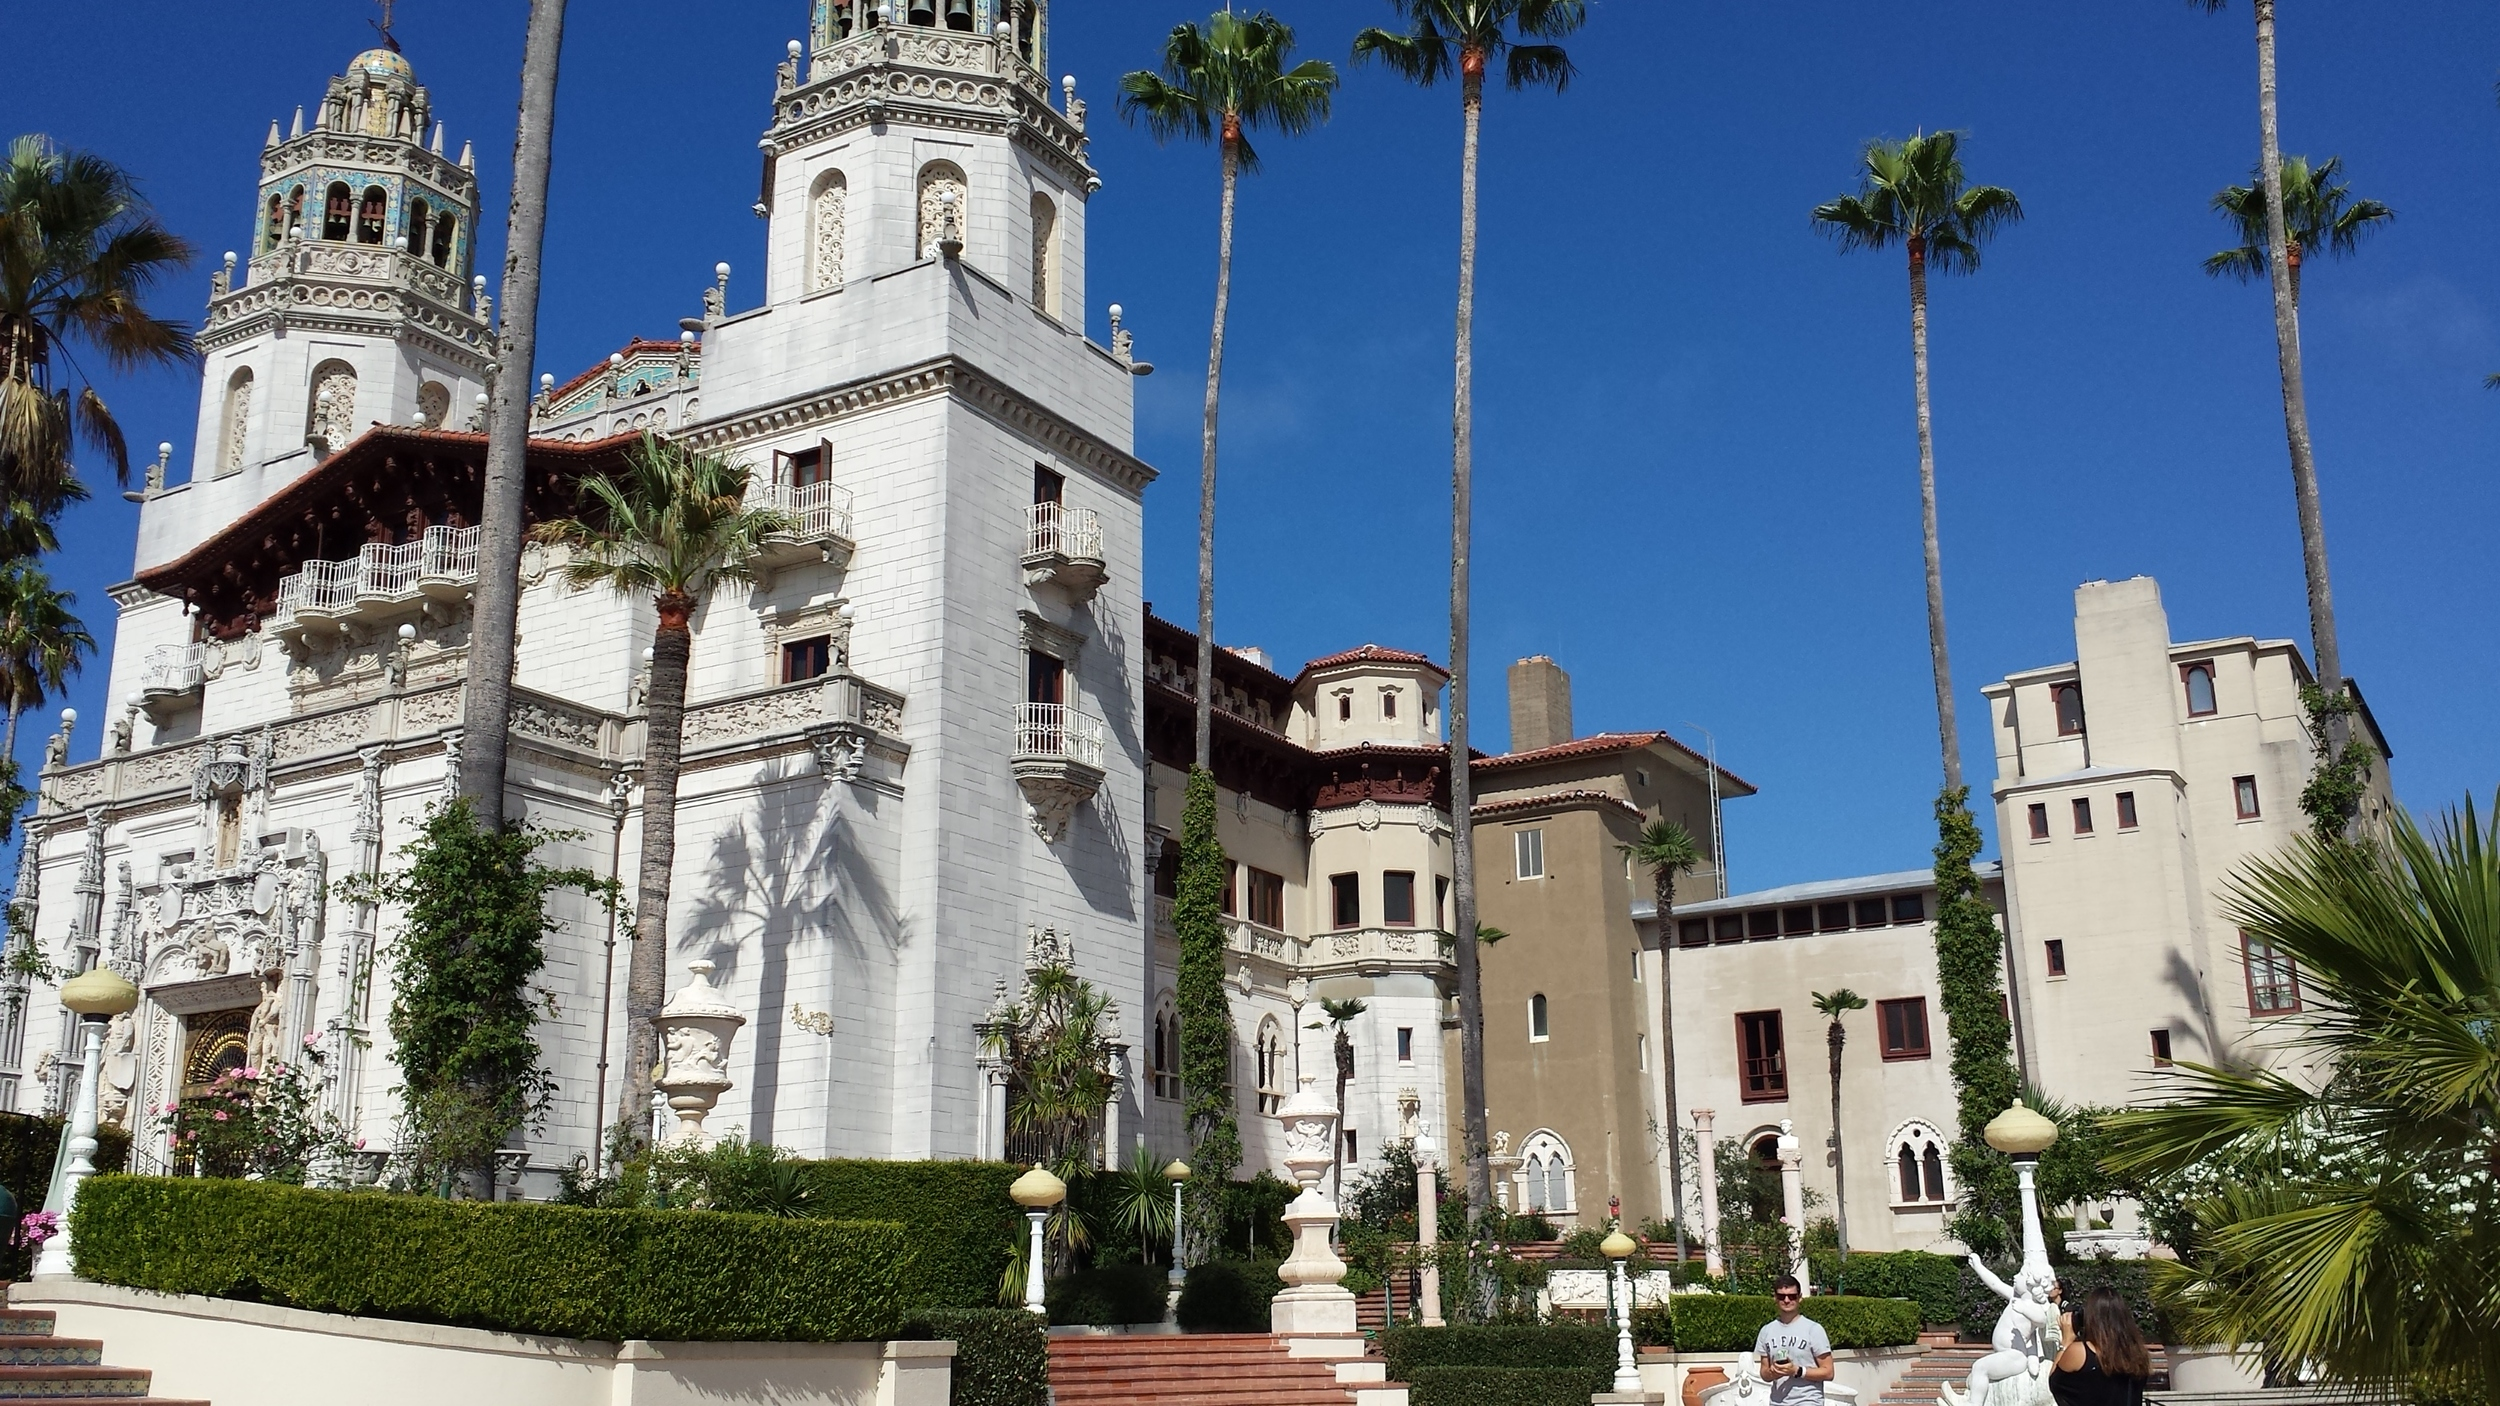 William Hearst's Castle high up on a hill